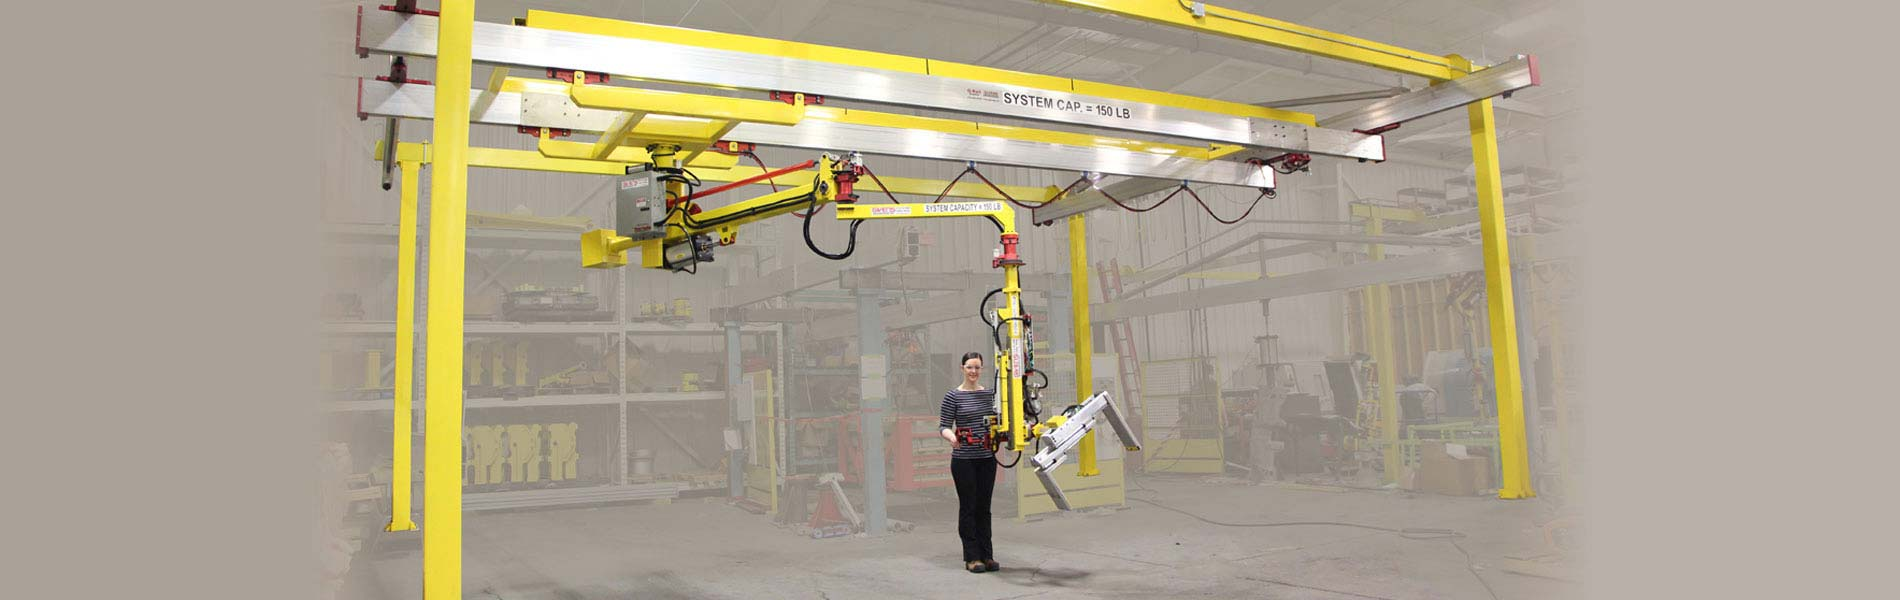 Bridge crane mounted industrial manipulators designed in the US by Givens Lifting Systems Inc.